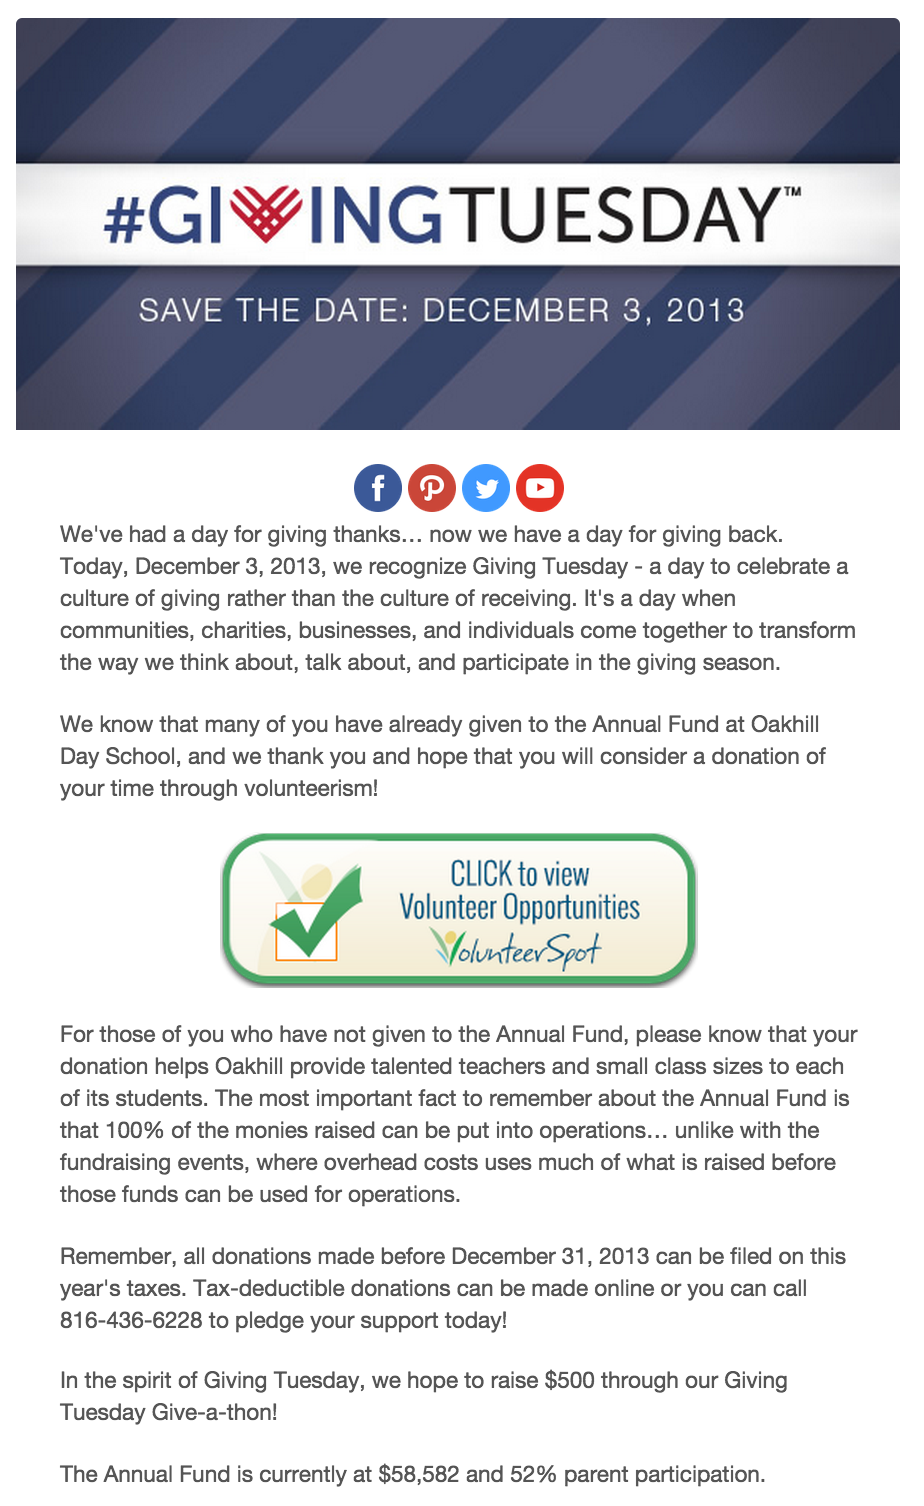 10 Giving Tuesday email ideas that drive donations